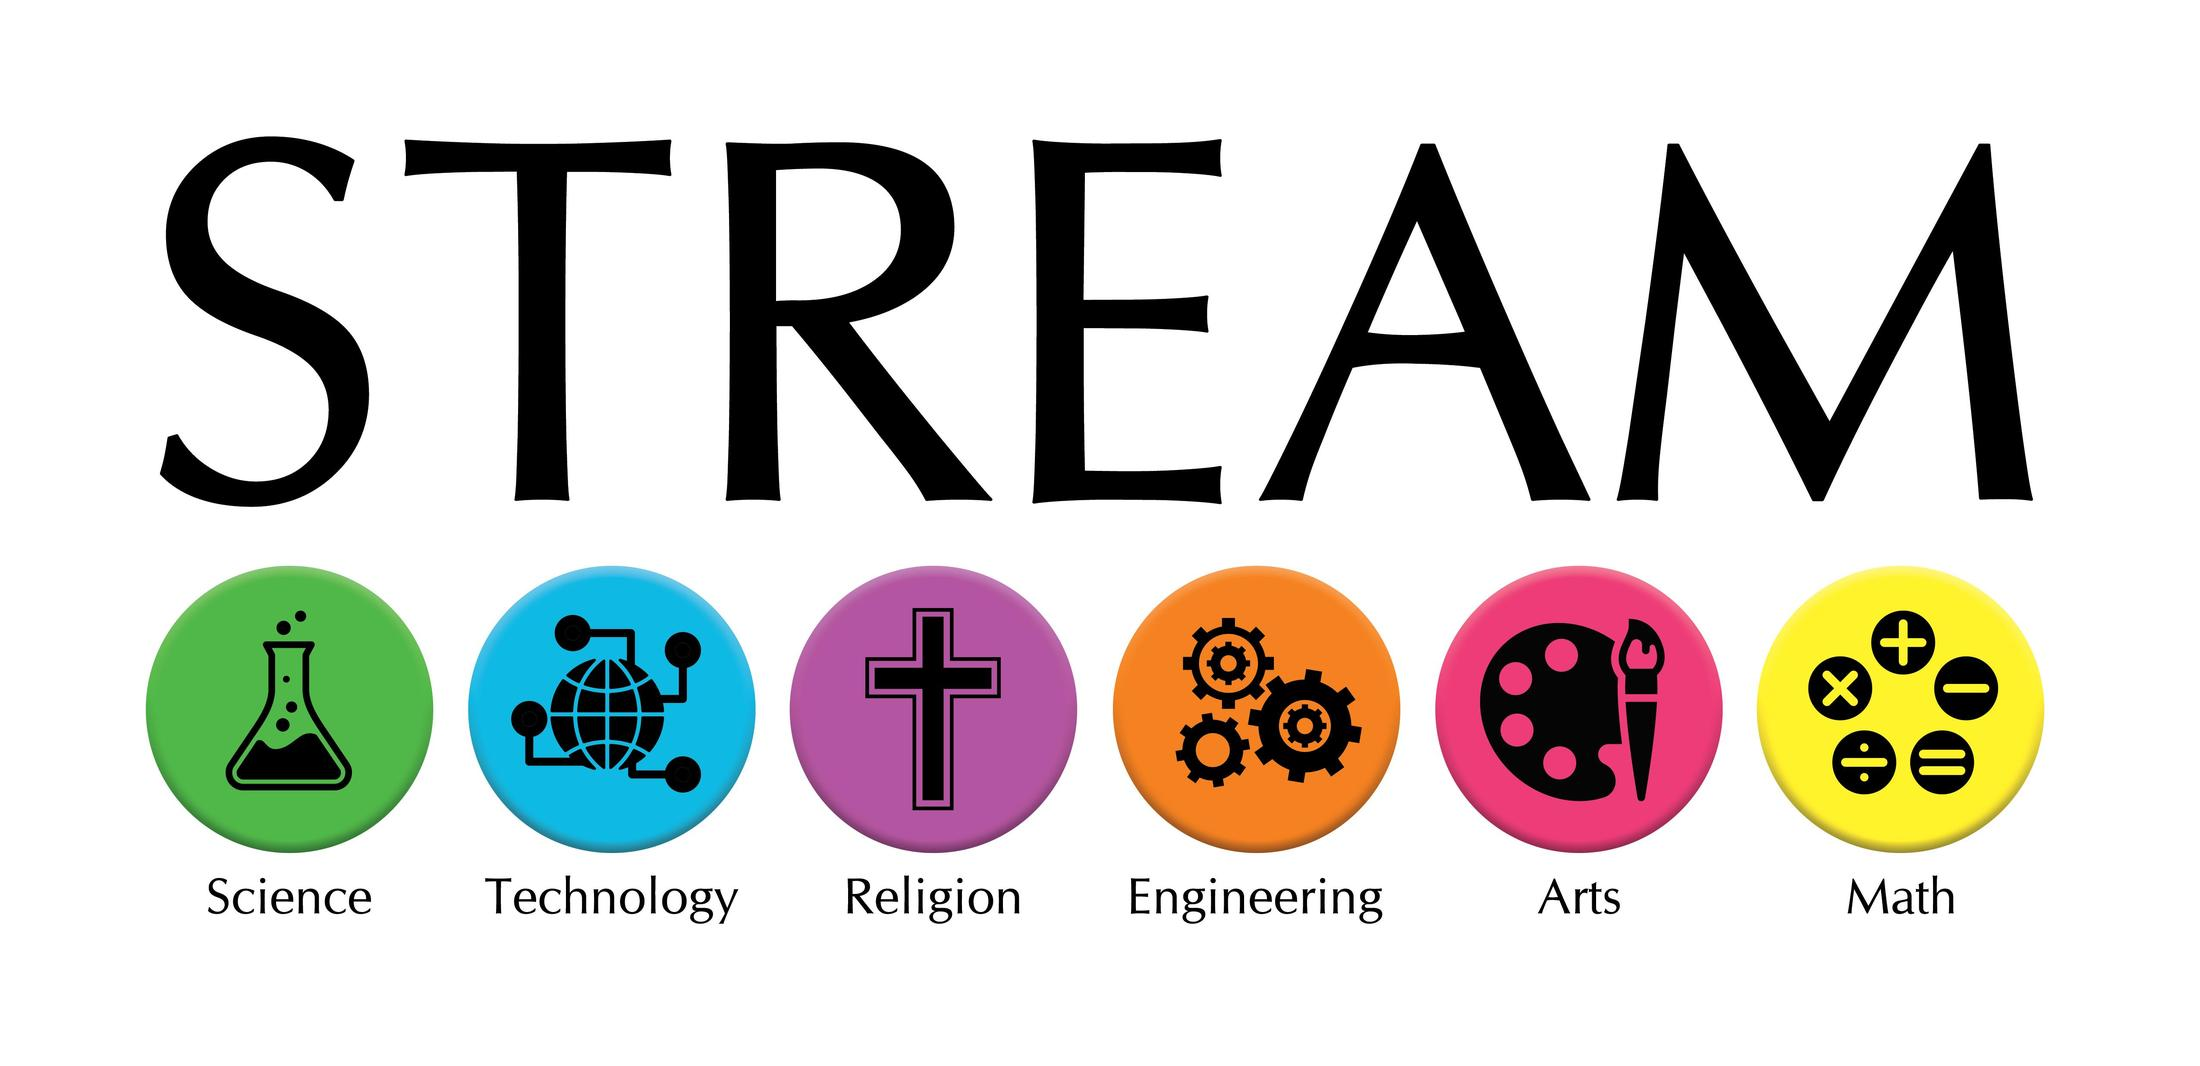 The Benefits Of STREAM Education - What To Know